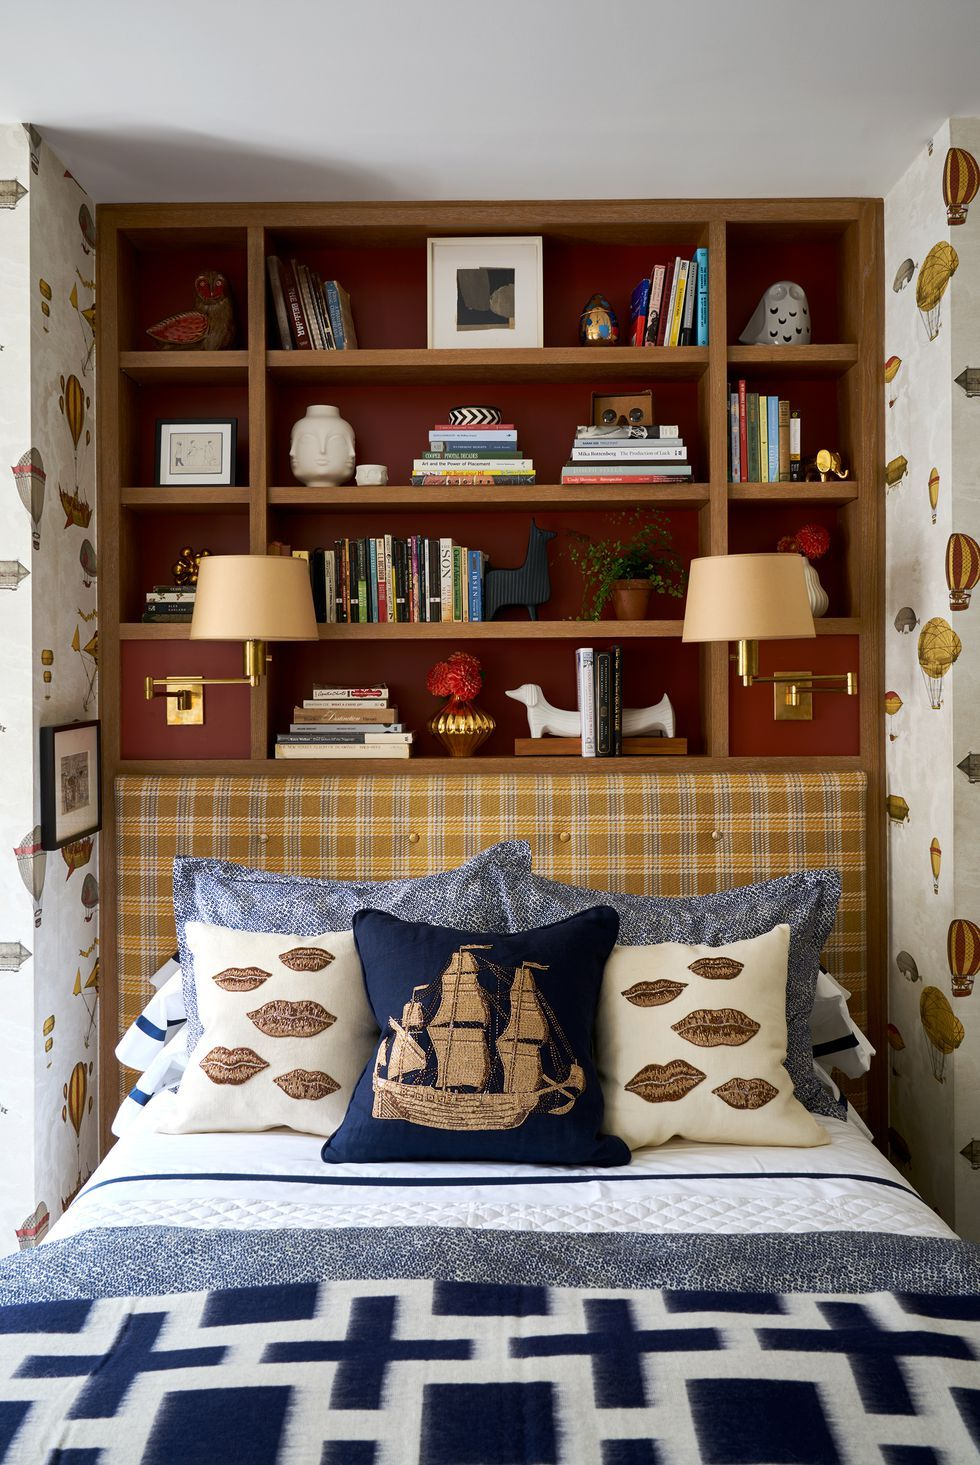 12 Small Bedroom Design Ideas - How to Decorate a Small Bedroom